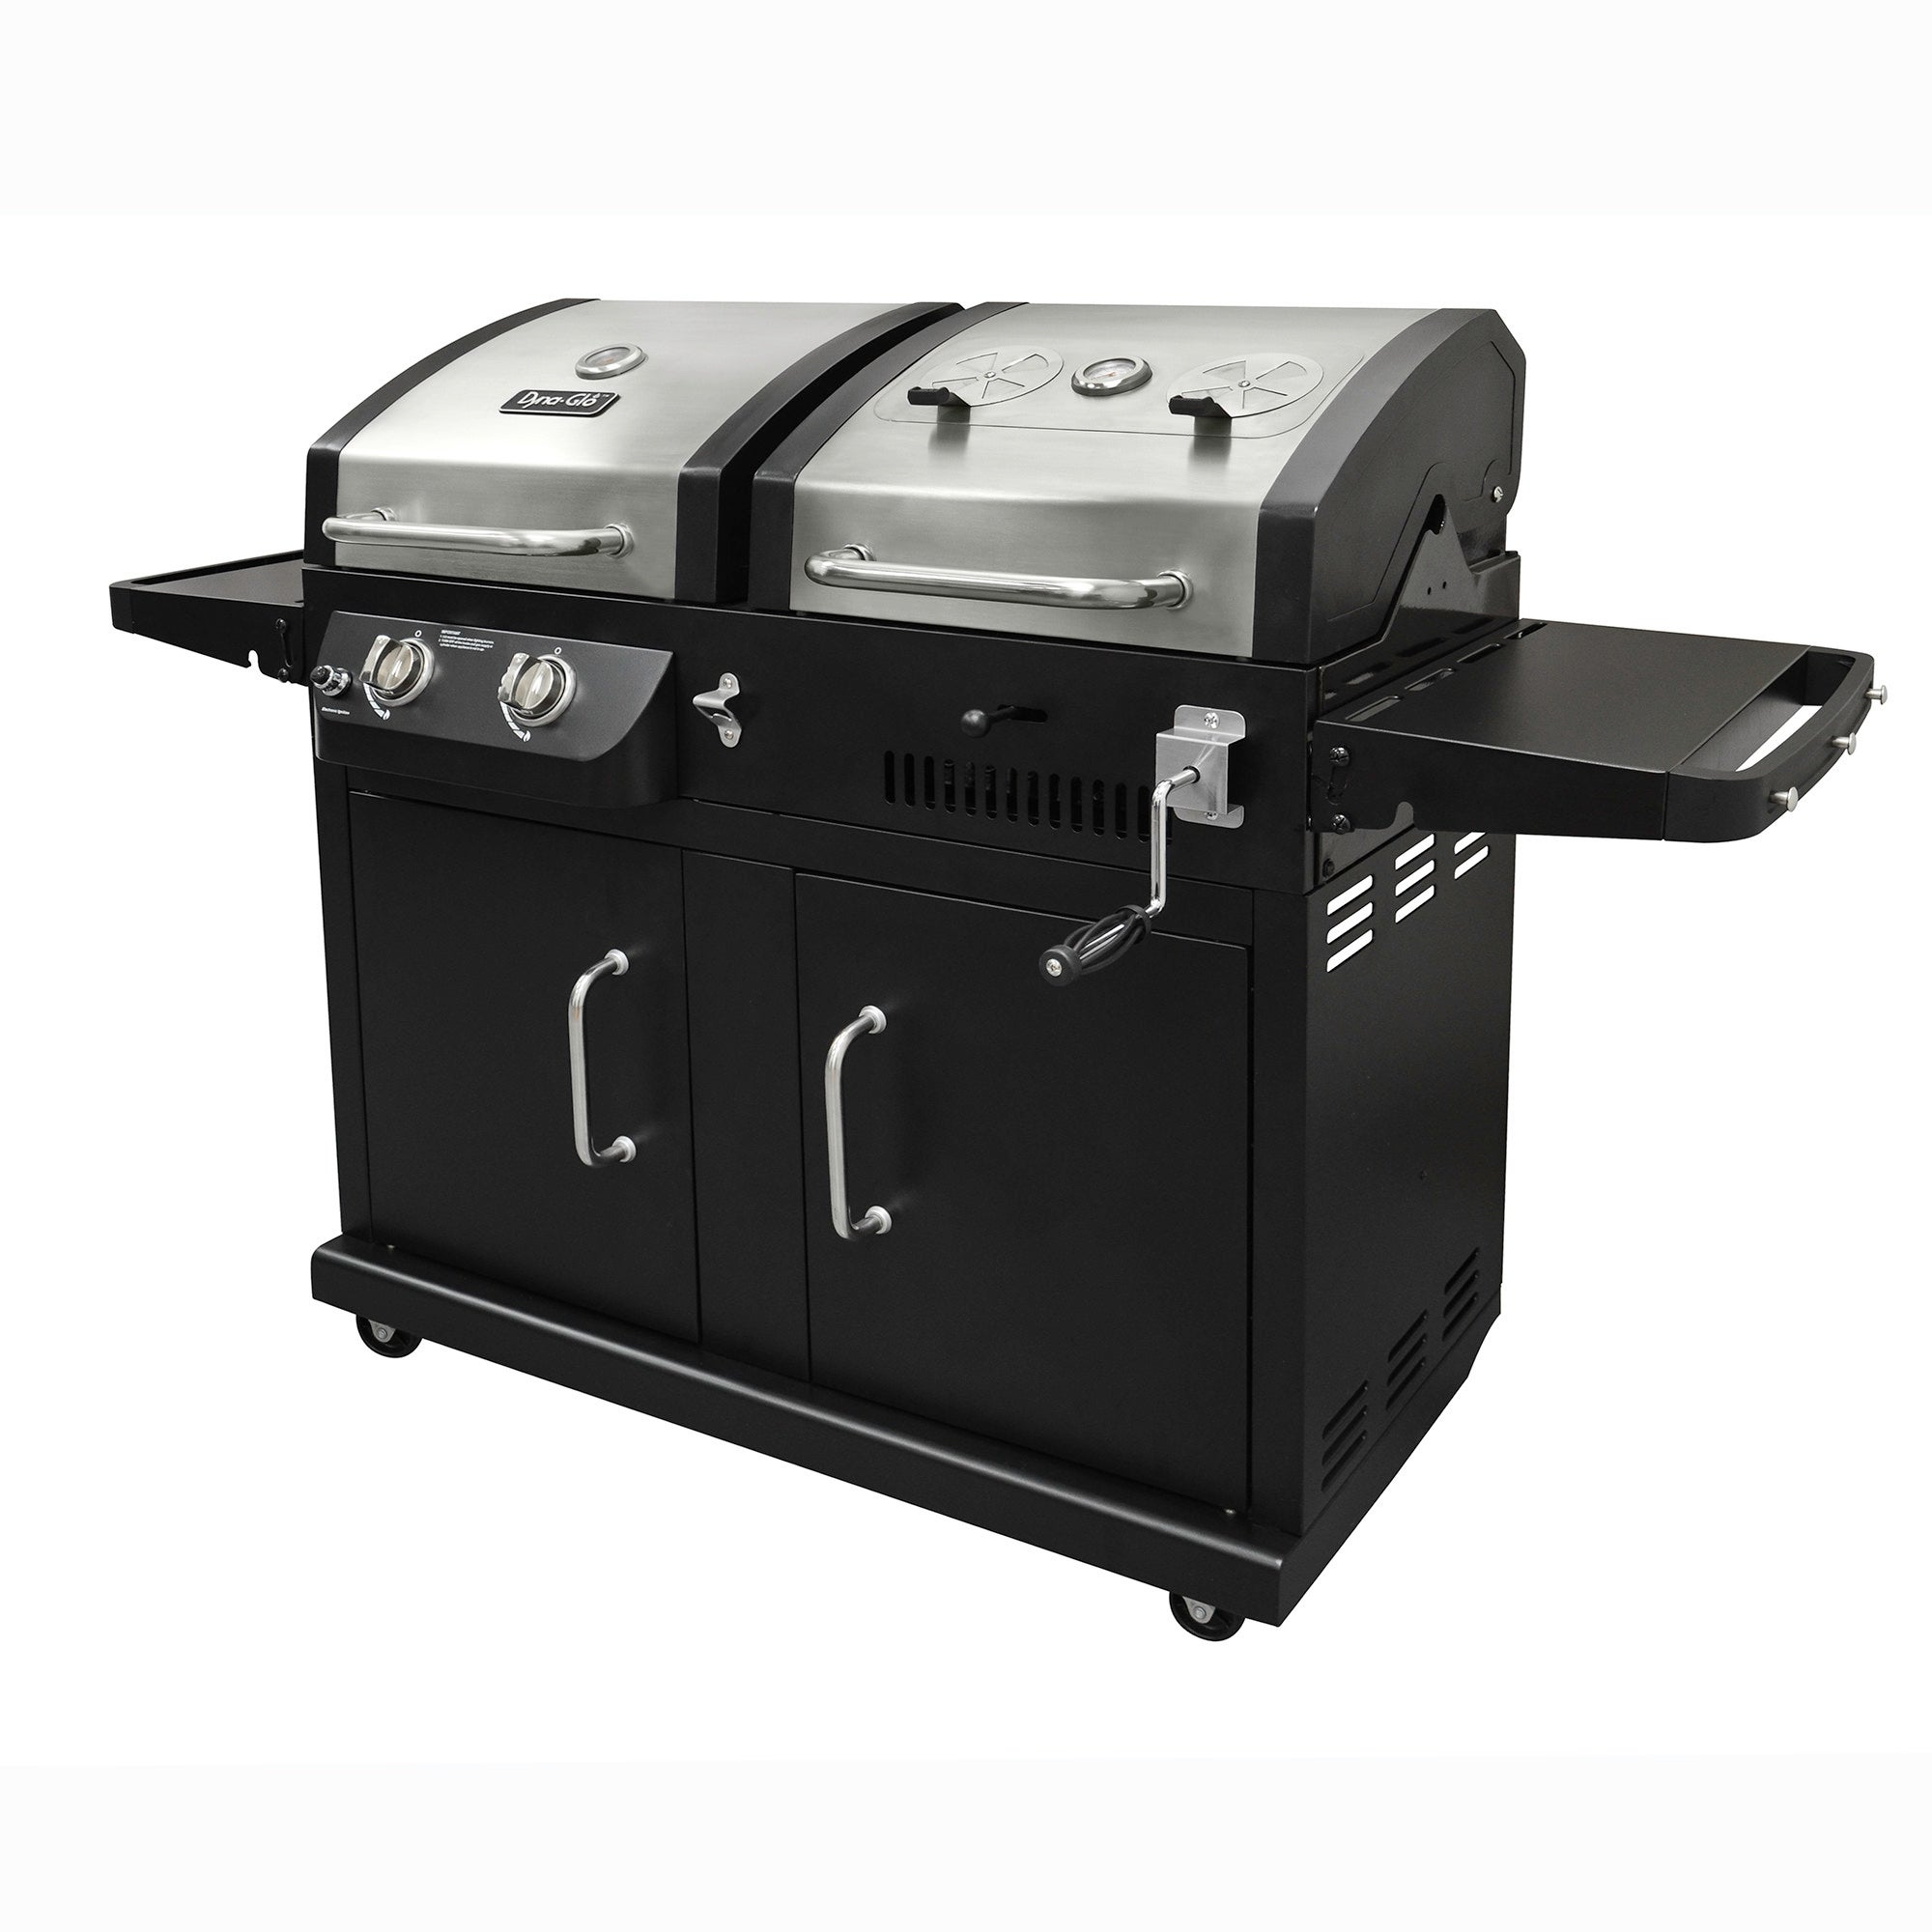 Dyna Glo Dgb730snb D 2 Burner 24 000 Btu Gas And Charcoal Bbq Grill With Adjule Tray 952 Square Of Cooking E